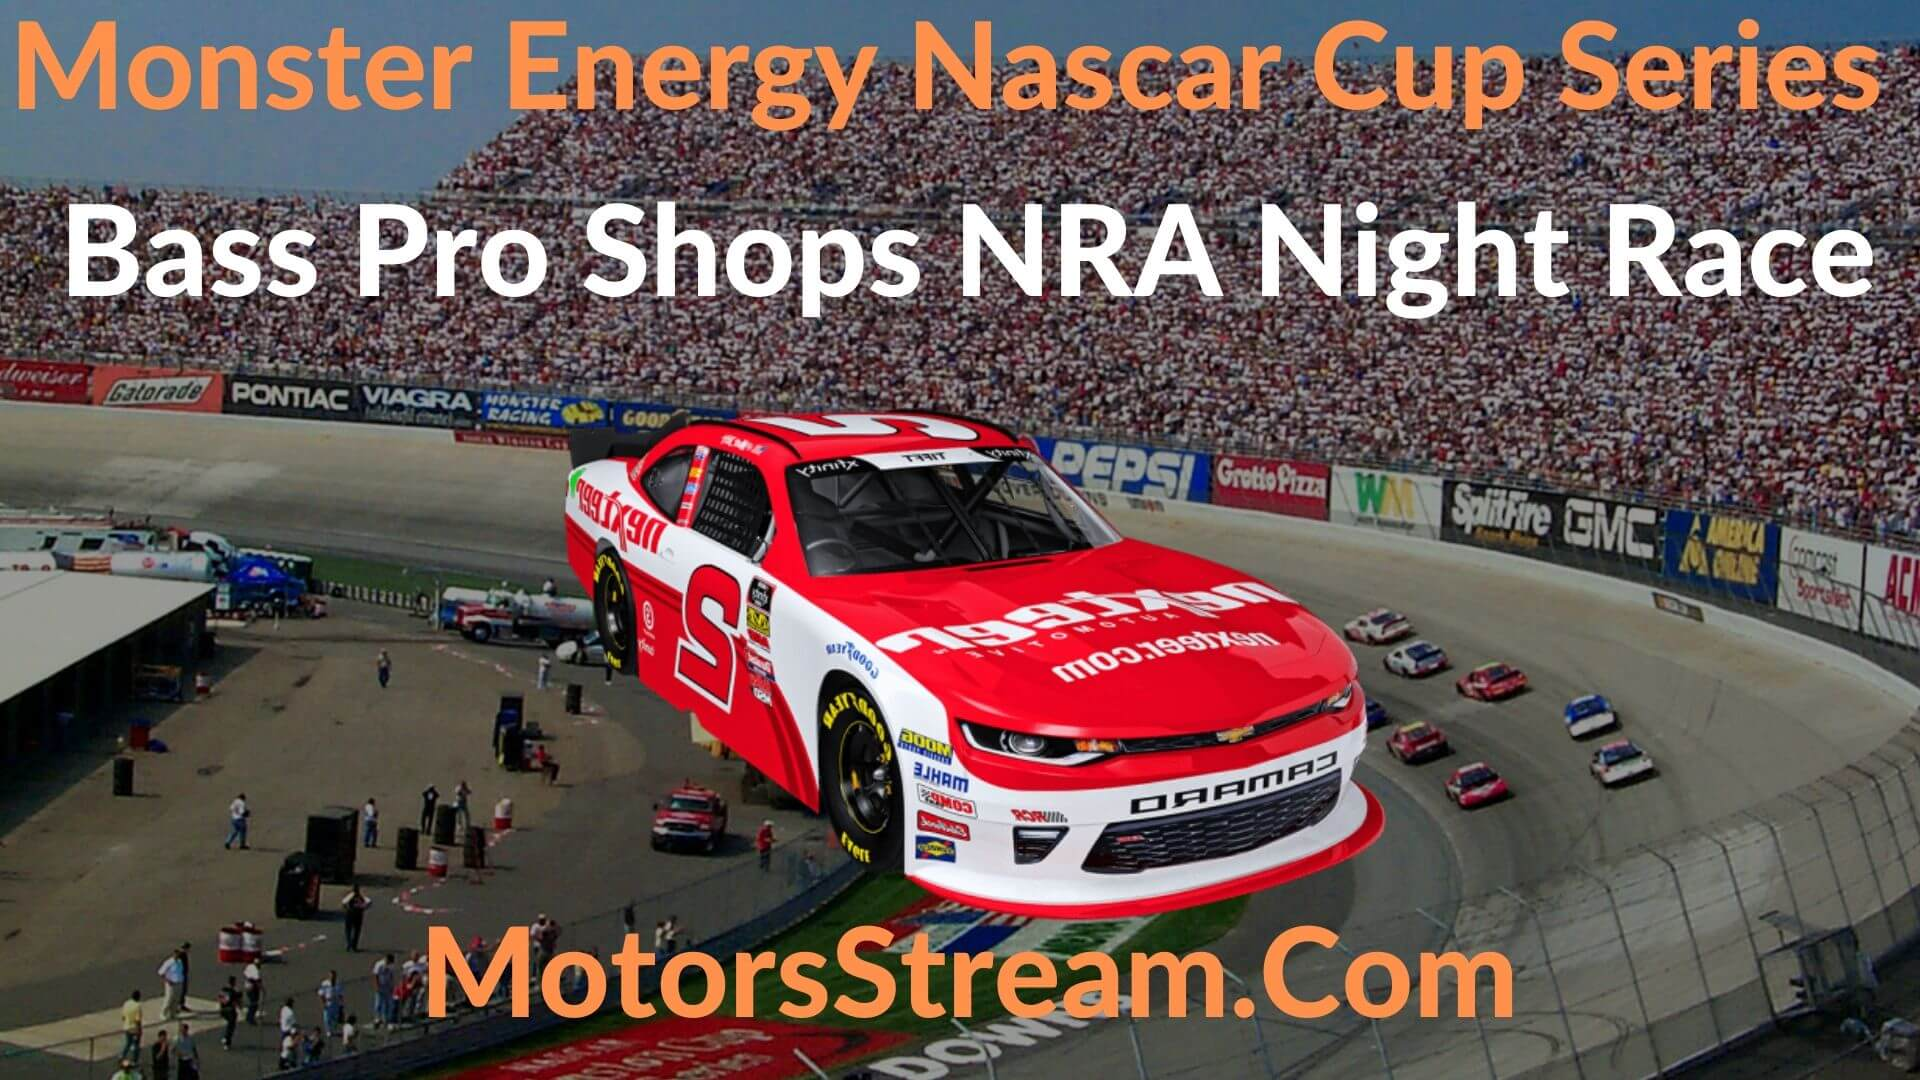 Bass Pro Shops NRA Night Race Live Stream | NASCAR CUP 2020